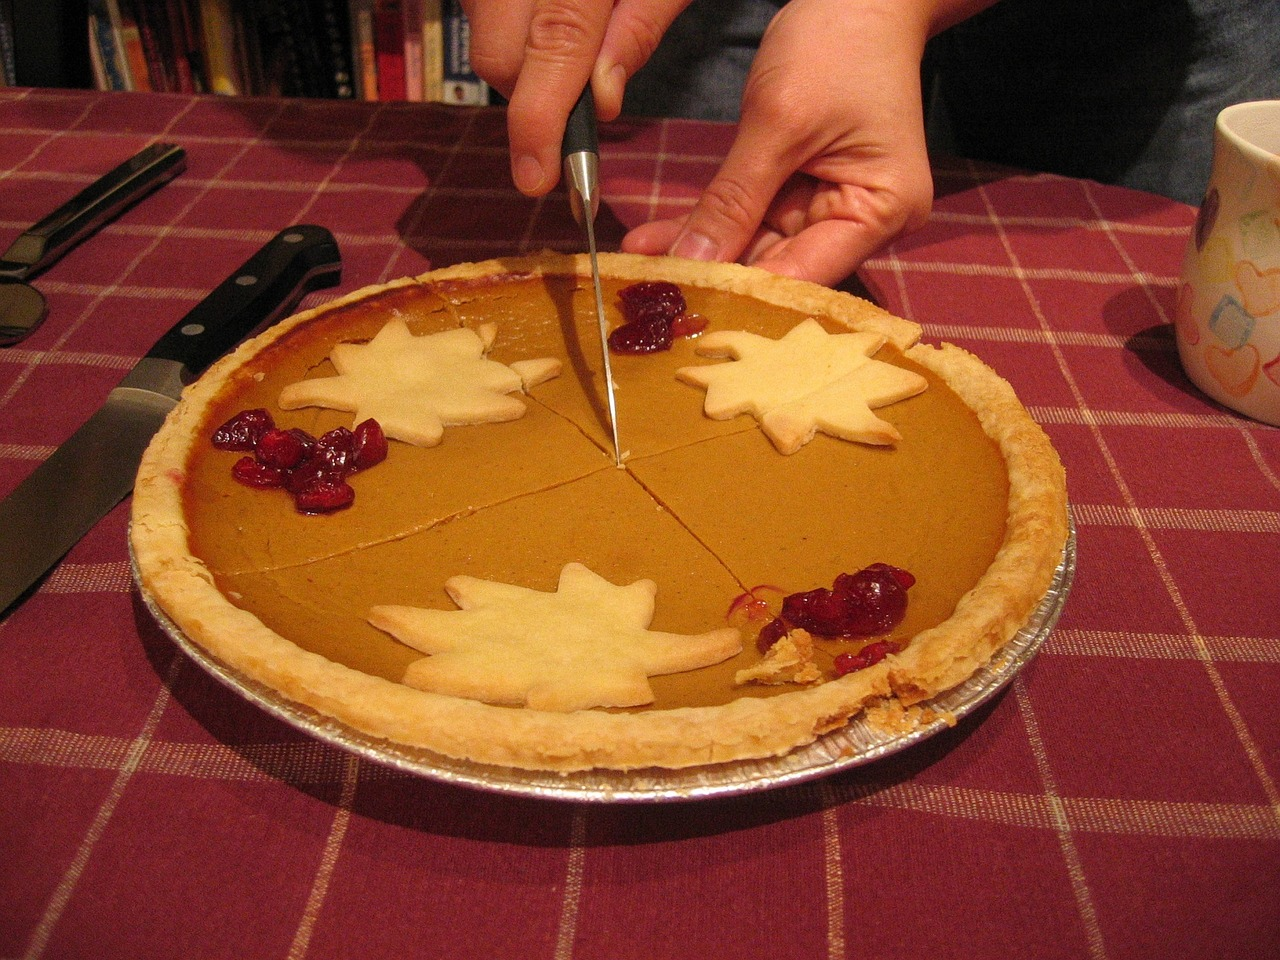 5pumpkin-pie-1041330_1280.jpg